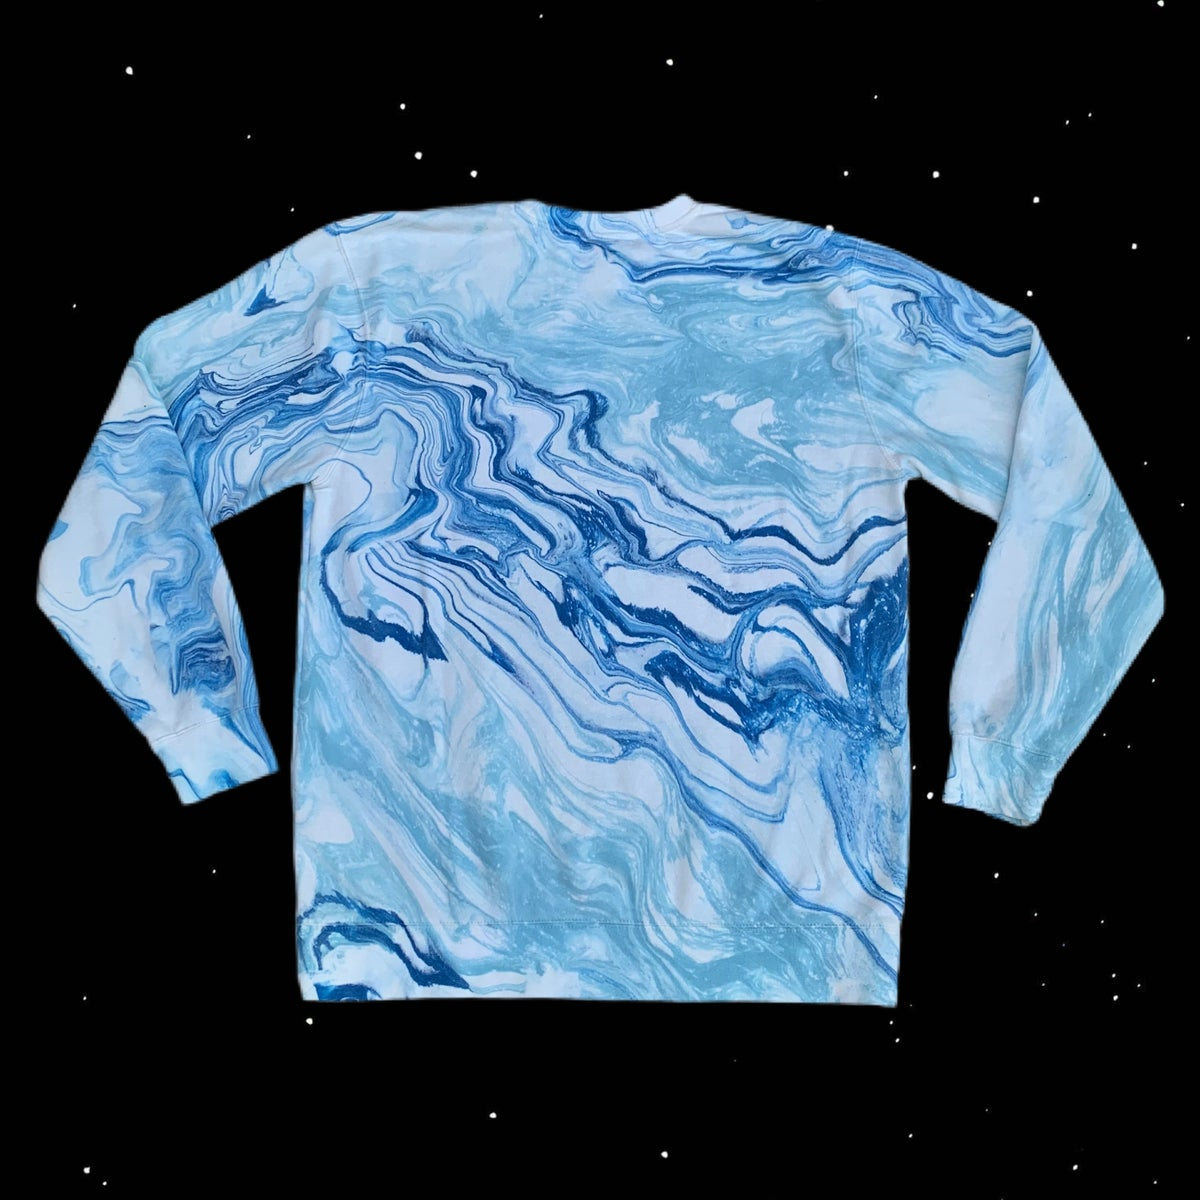 Blue Dream Hand Marble Dyed Unisex Crew Neck Sweatshirt! - PRE-ORDER!